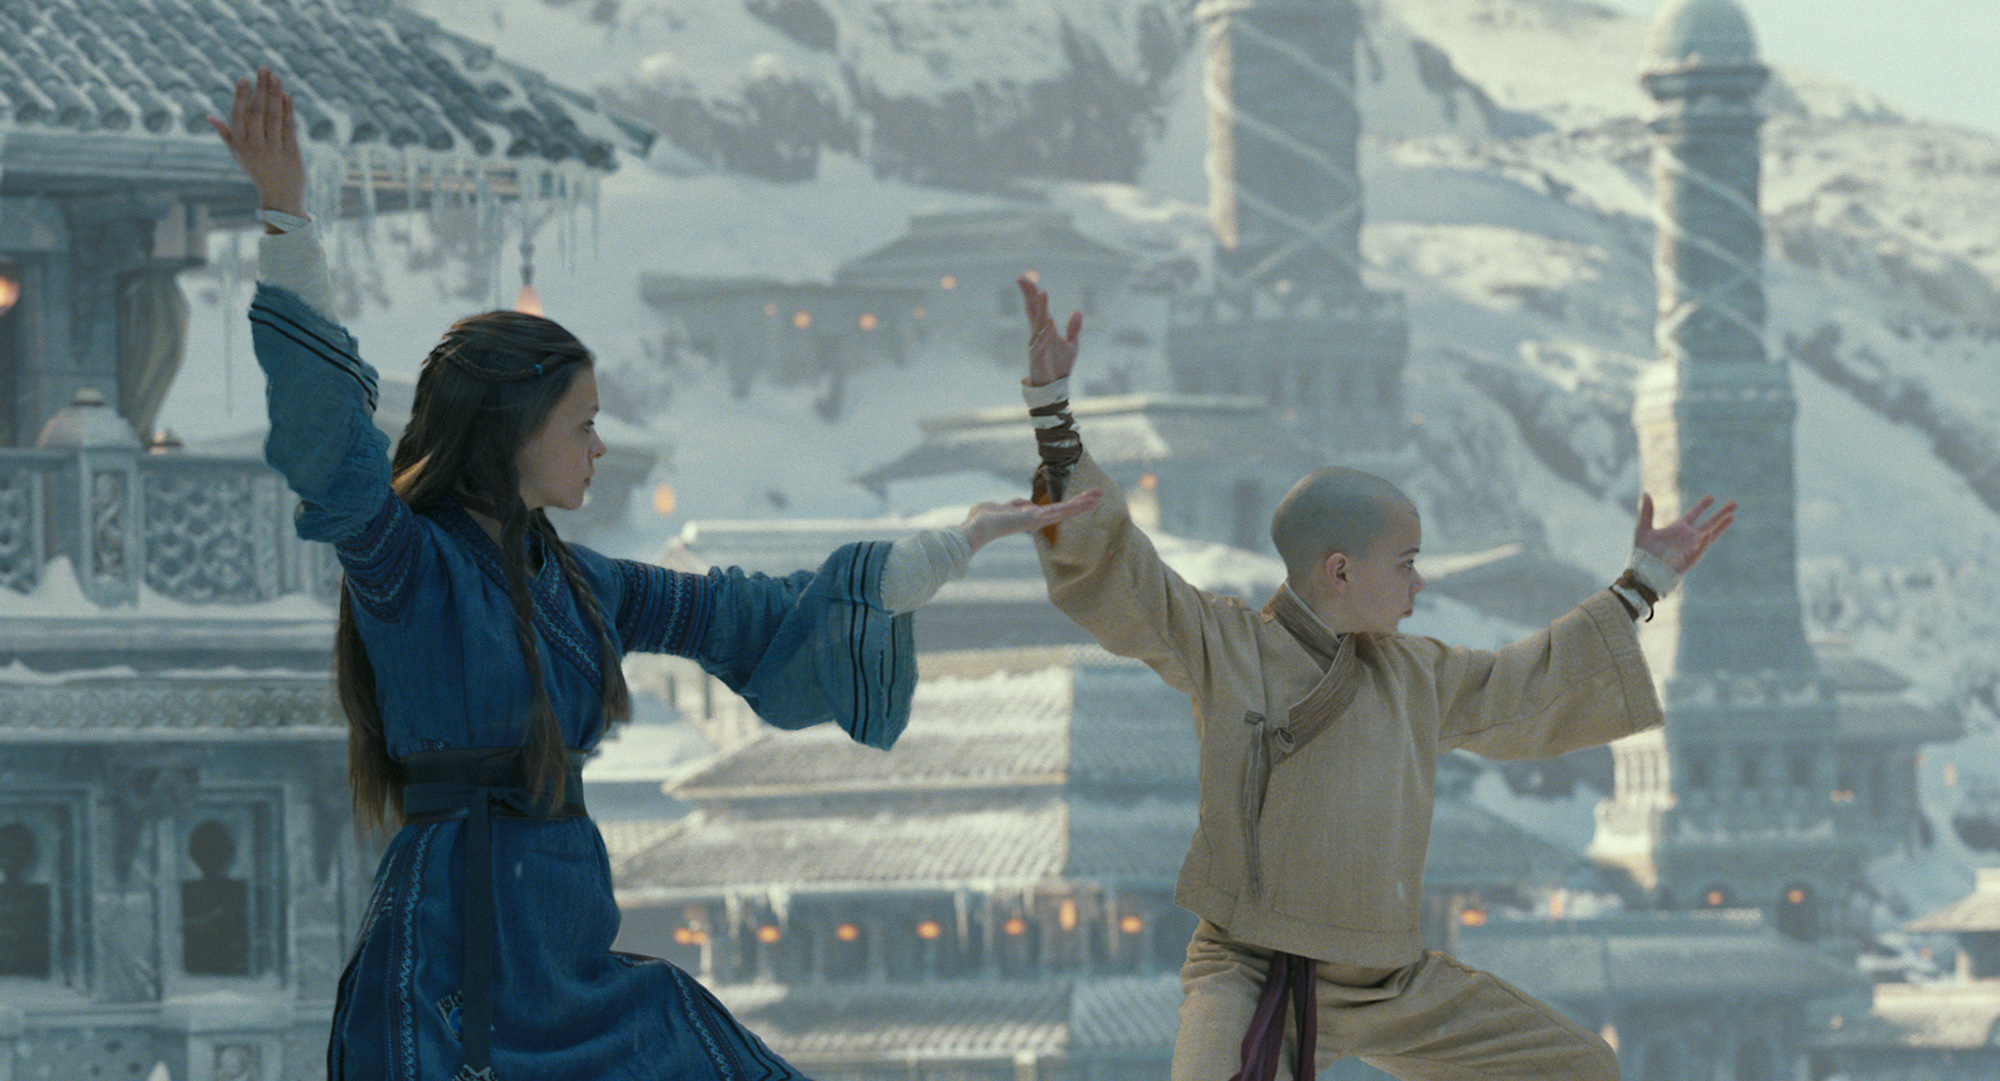 Two kids from The Last Airbender movie doing Chi Gong